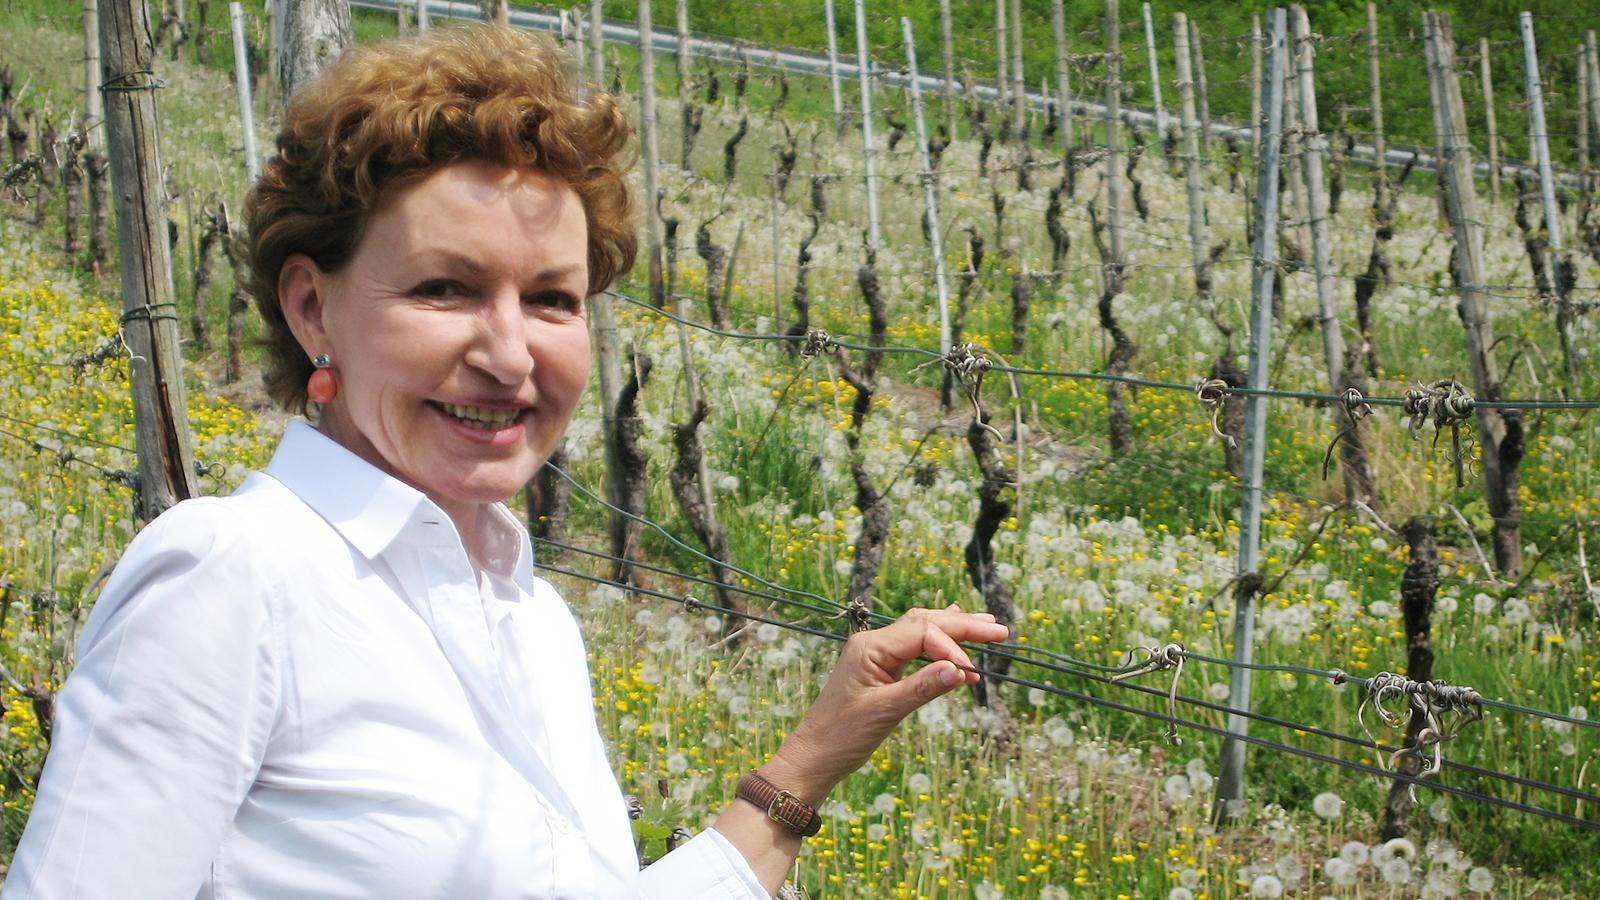 German Vintner Annegret Reh-Gartner Dies at 61